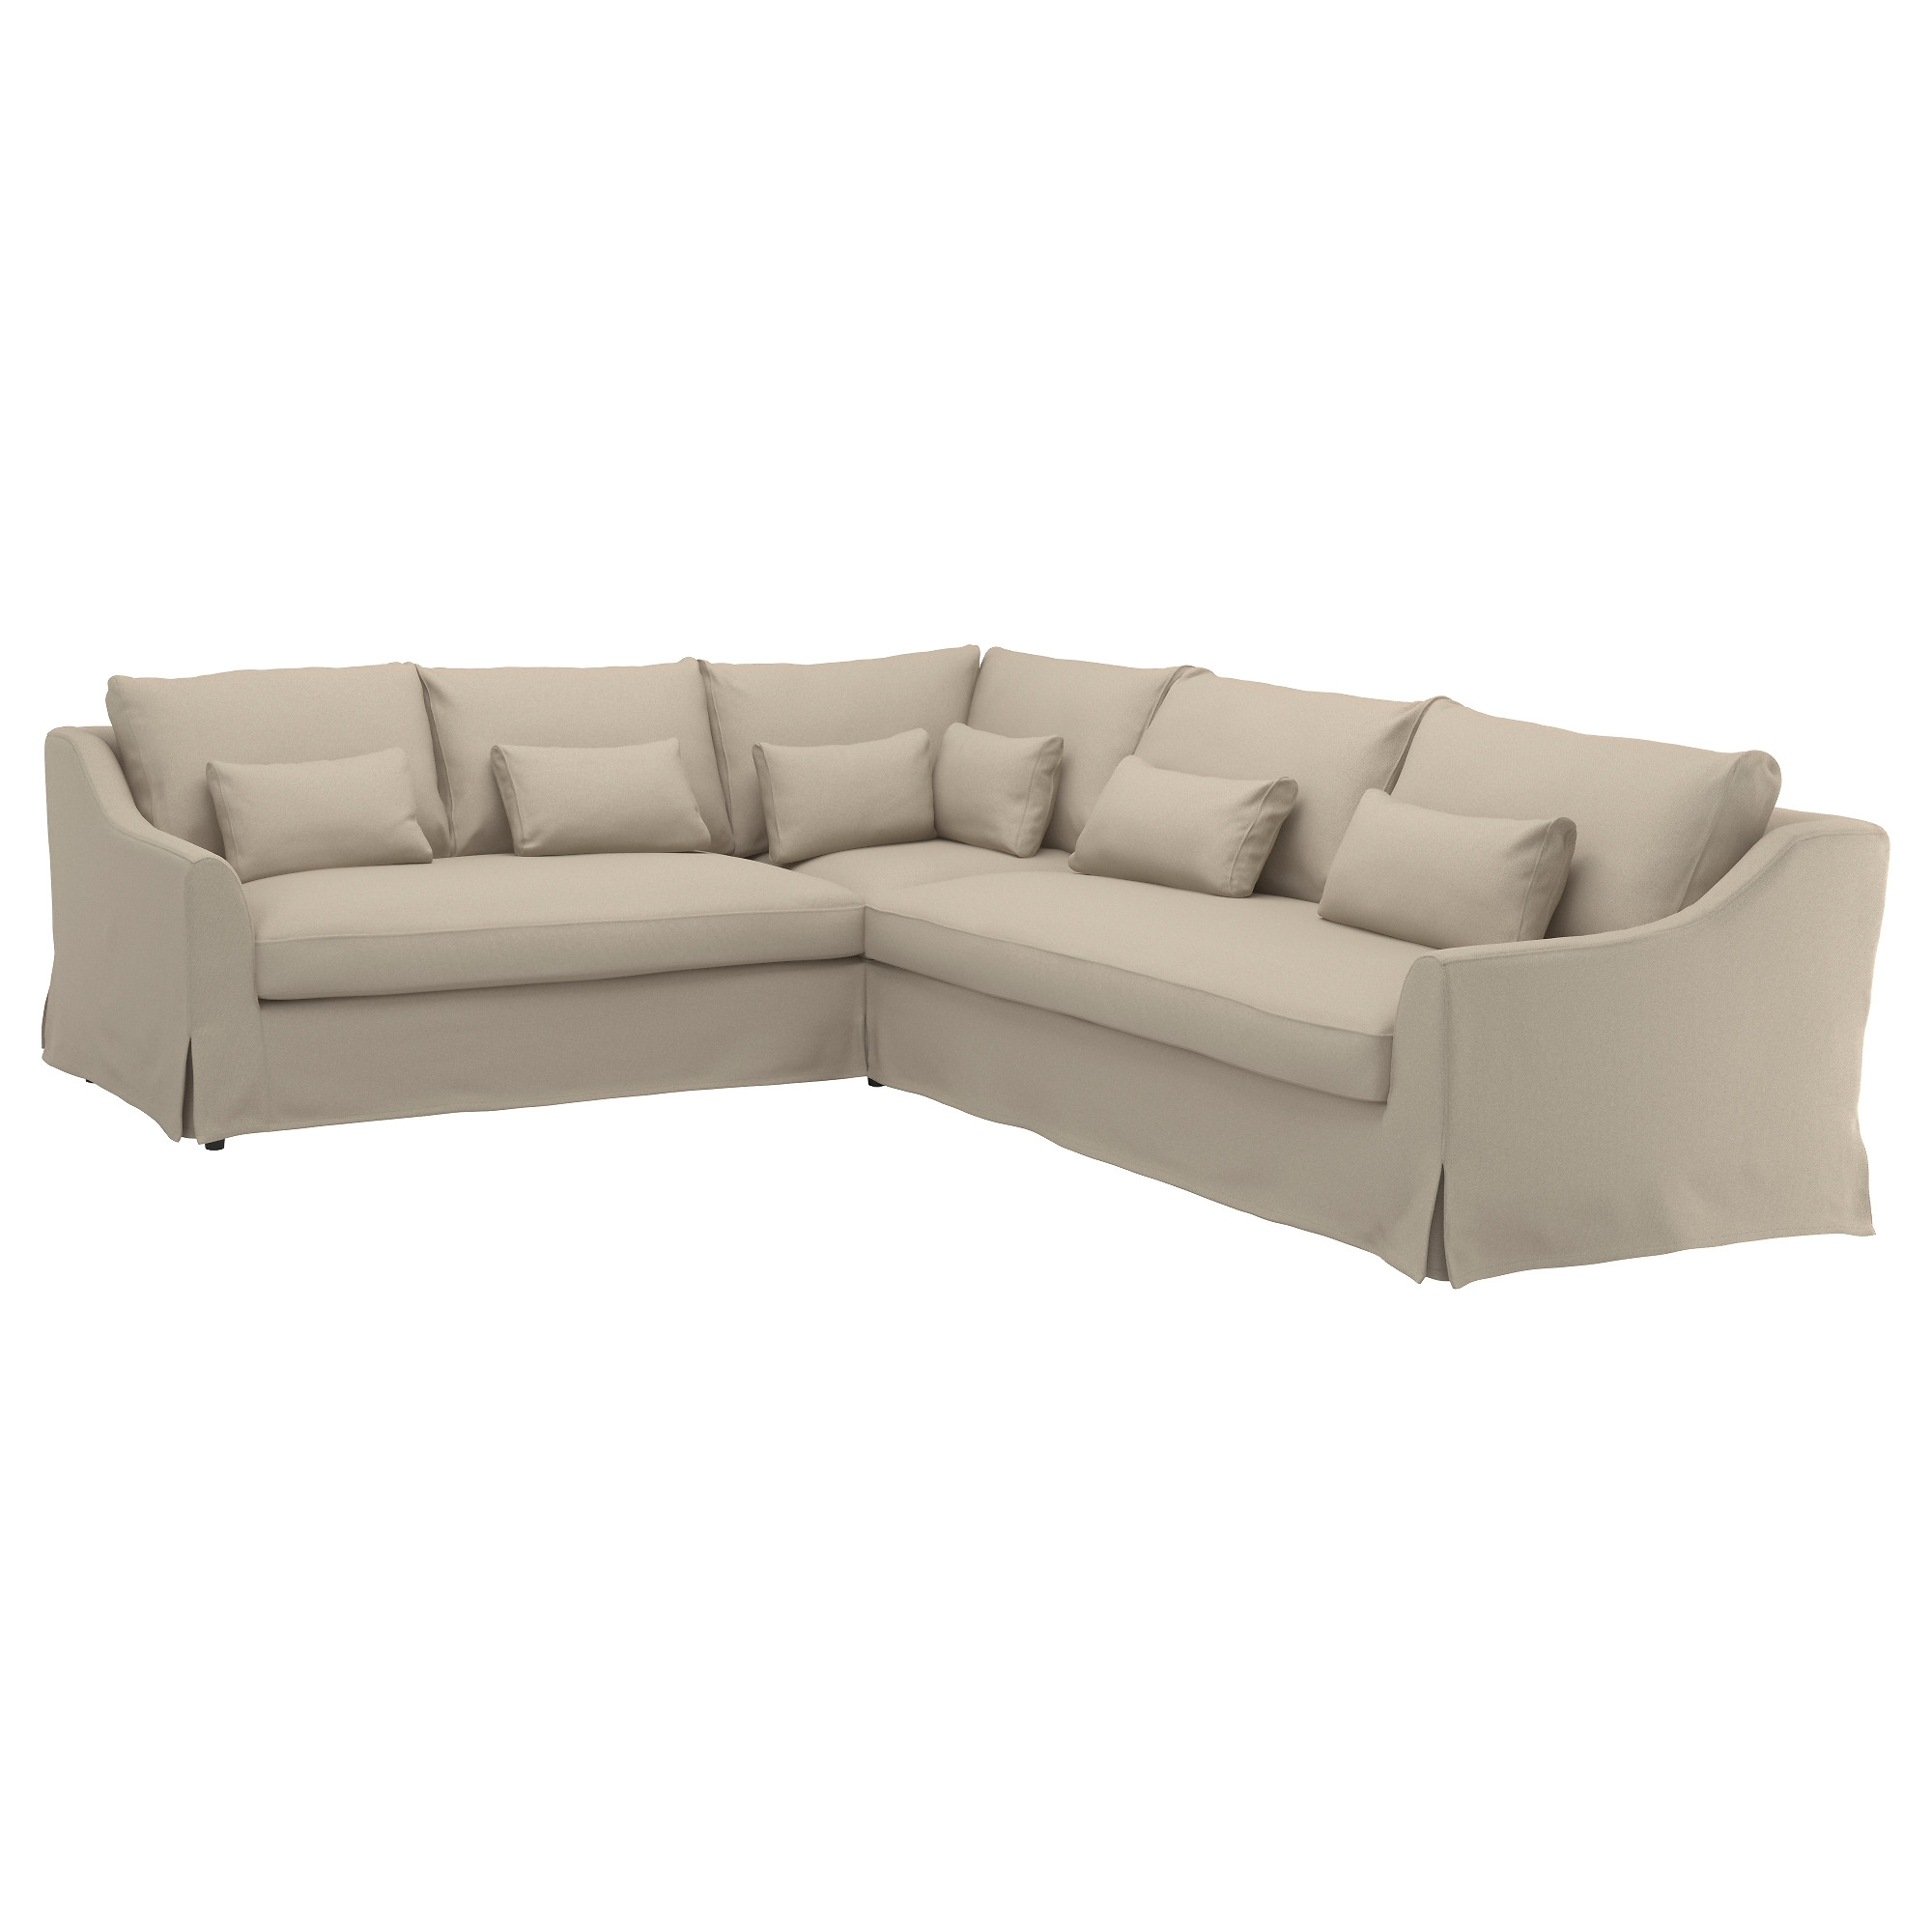 Most Recent 2 Seat Sectional Sofas Pertaining To Färlöv Sectional,5 Seat/sofa Left – Flodafors Beige – Ikea (View 14 of 20)